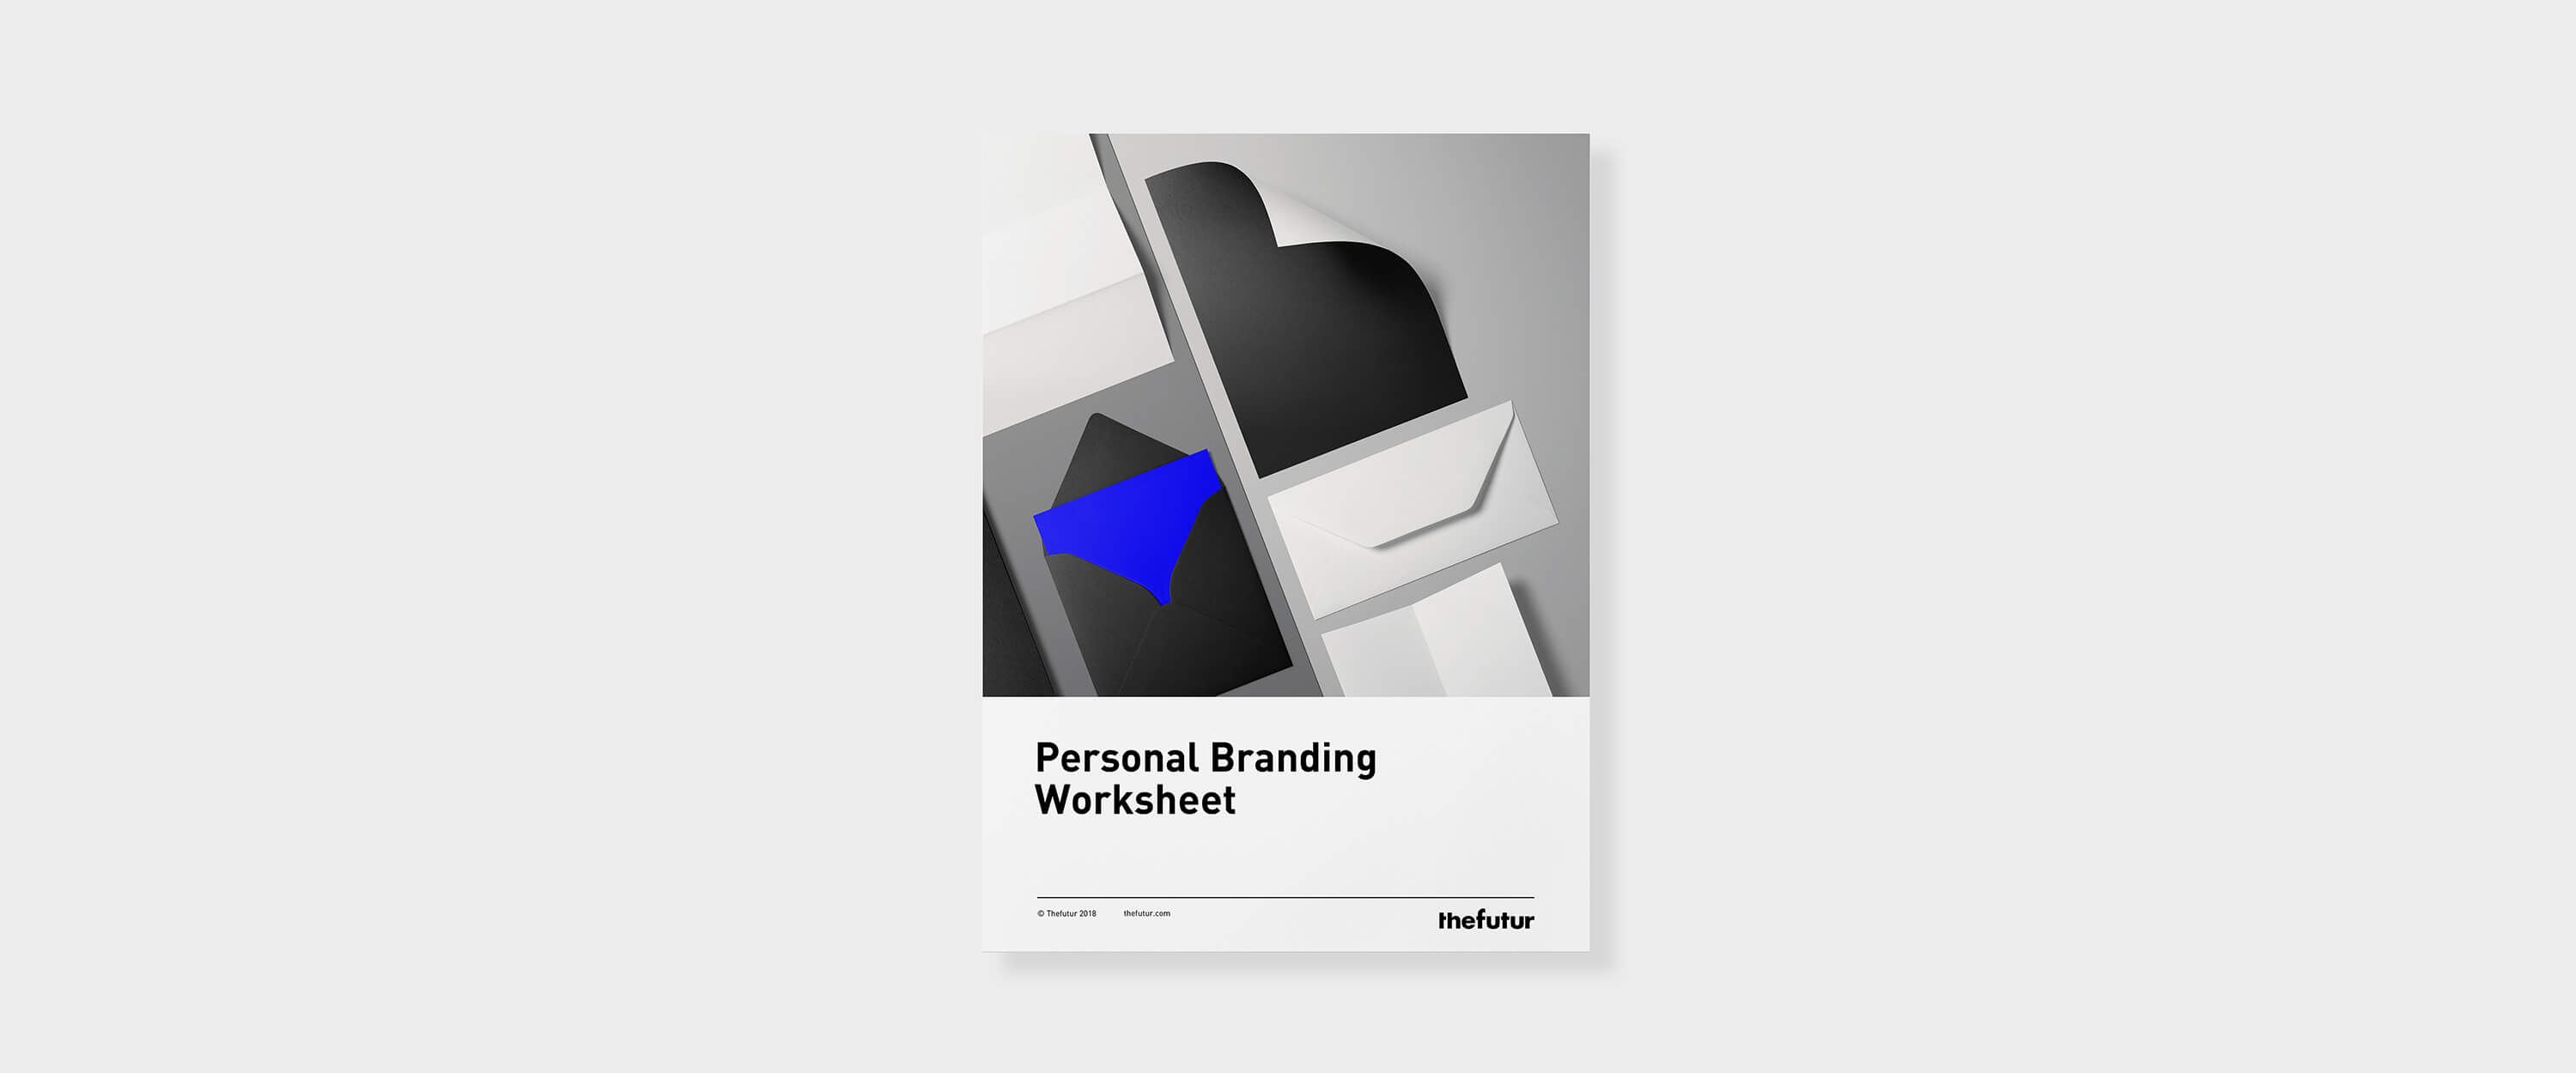 Personal Branding Worksheet Free Download